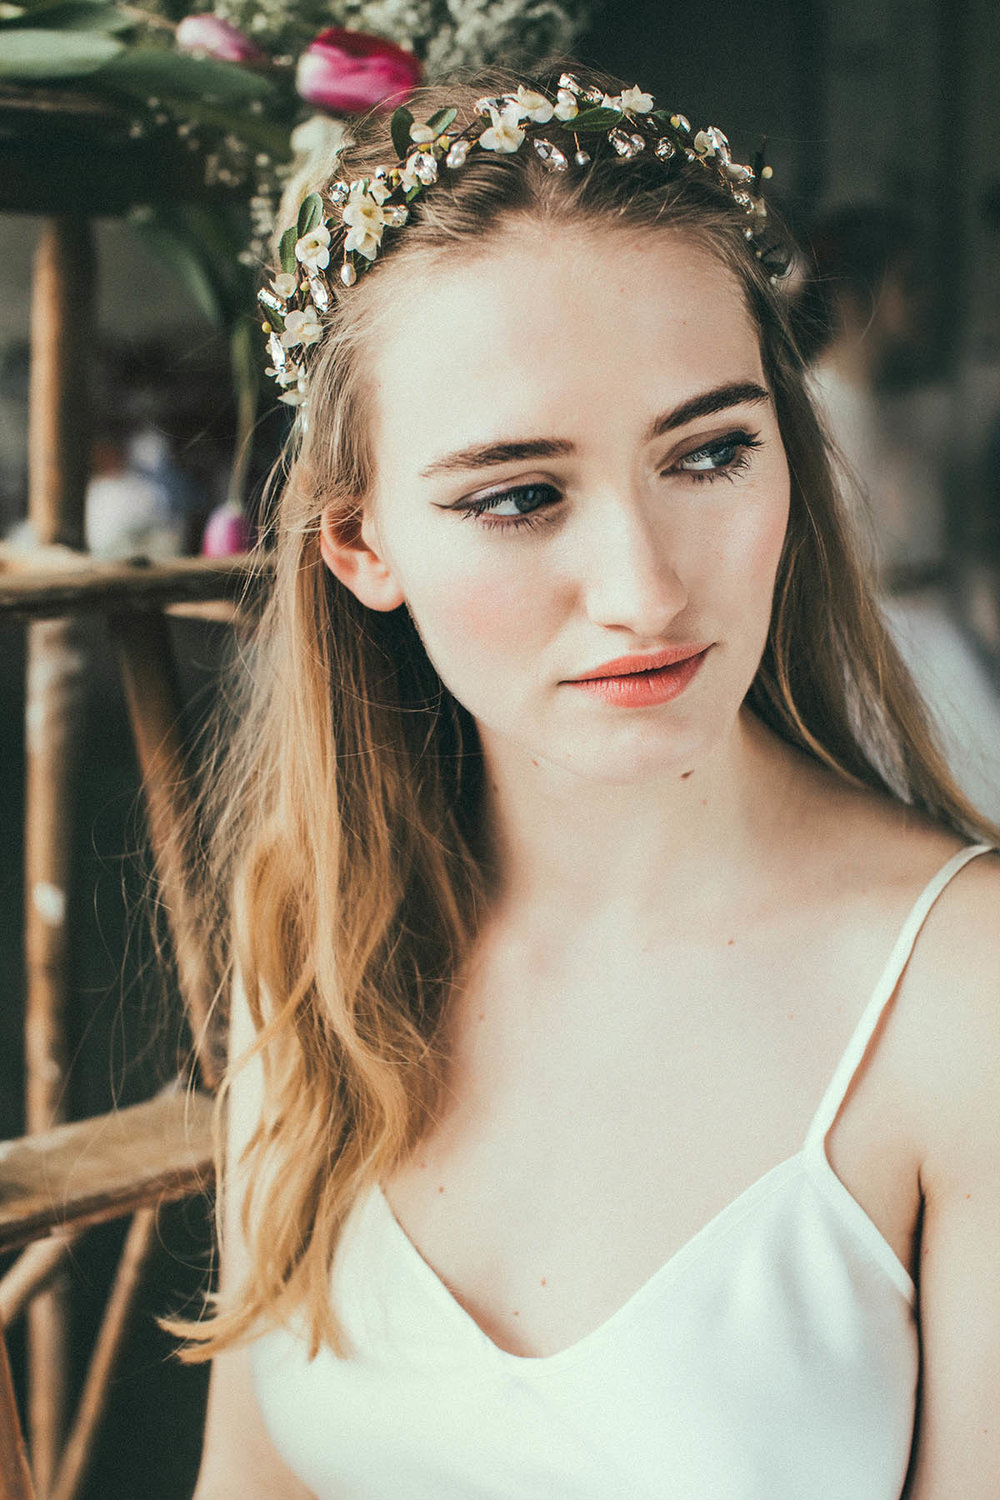 We-Are-Flowergirls_Lookbook_Flowercrown_Blumenkranz_SS17_c_Lupi-Spuma_Web_25.jpg